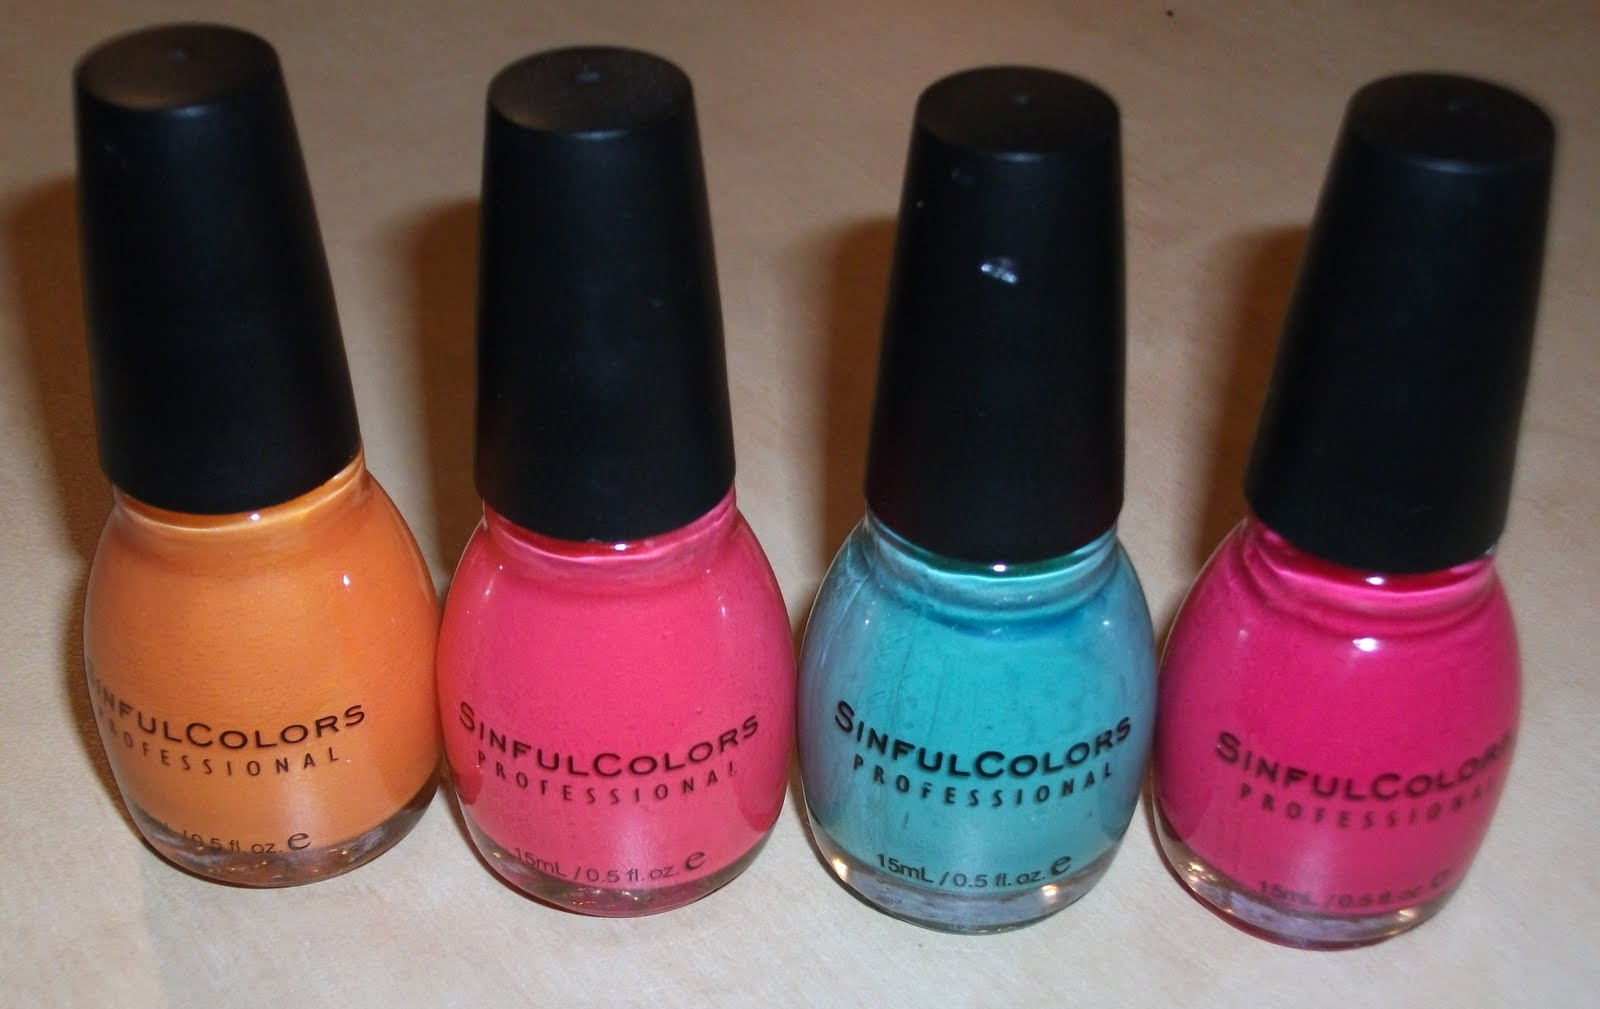 Cheapalicious: $0.99 Sinful Colors nail polish this week @ Walgreens!